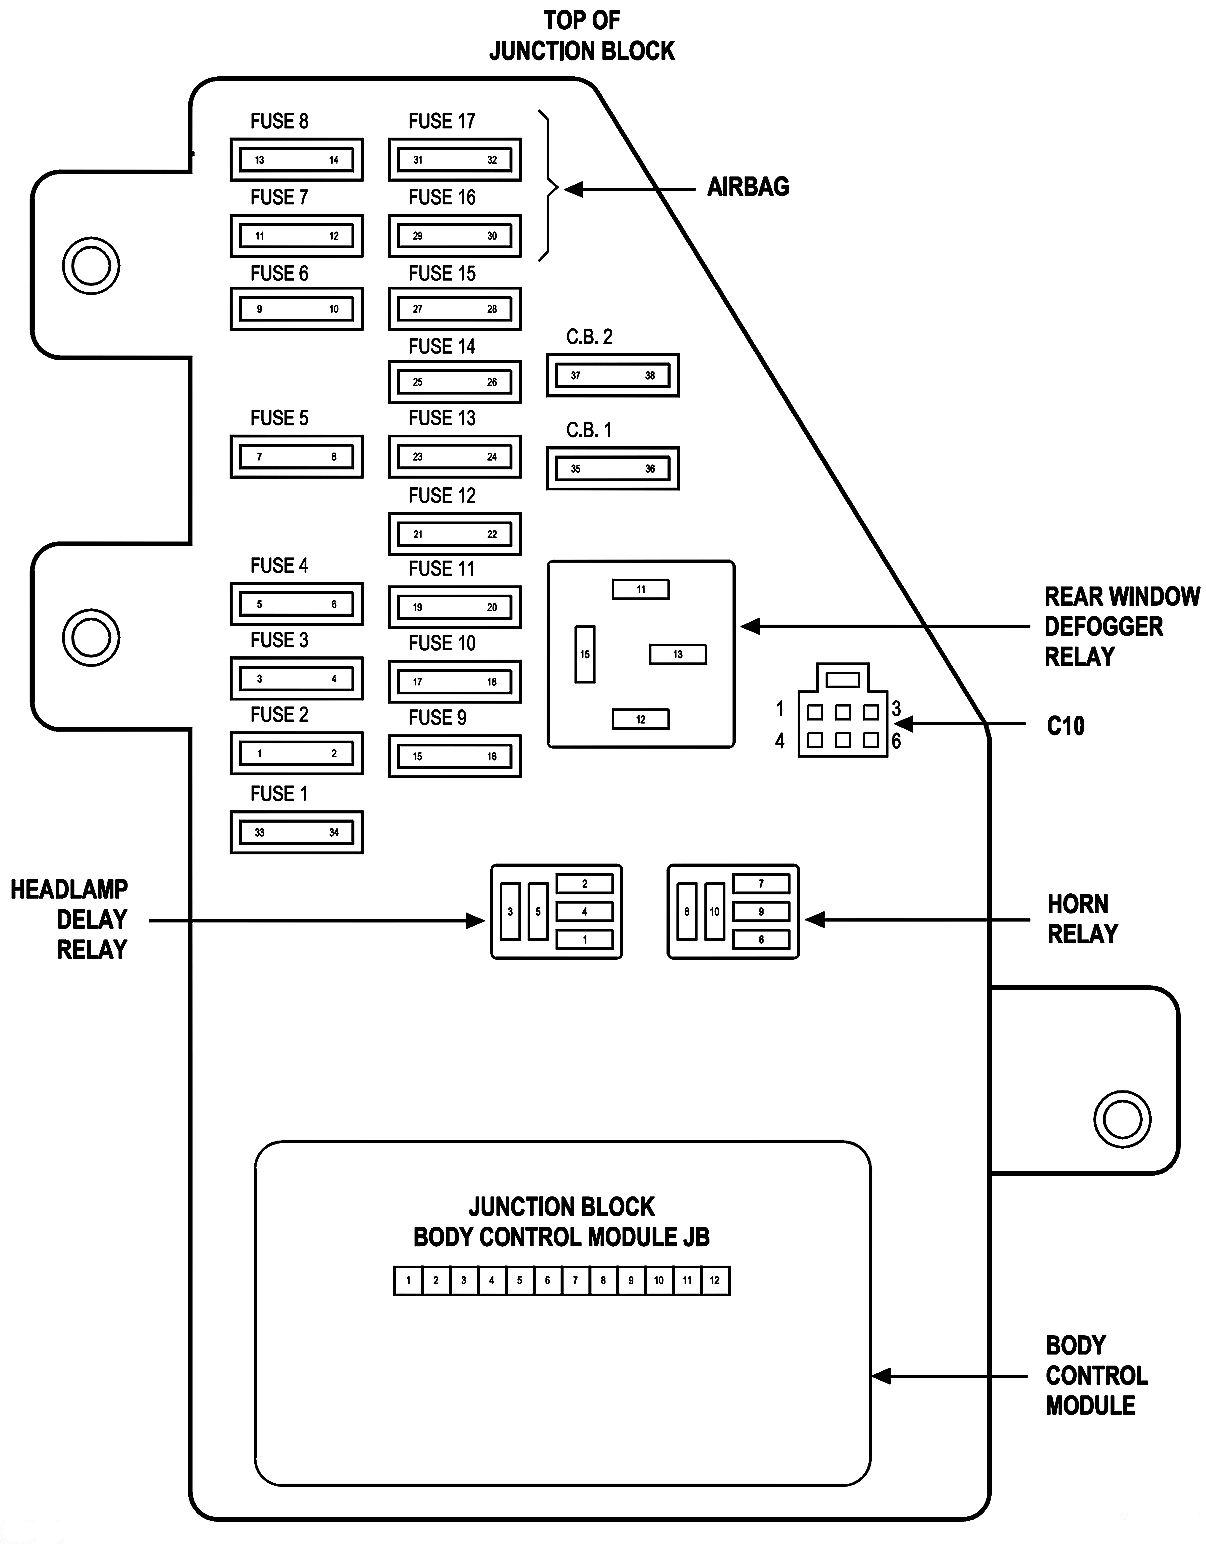 fuse box diagram for 2005 chrysler sebring starting know about 2006 sebring fuse  box diagram 1996